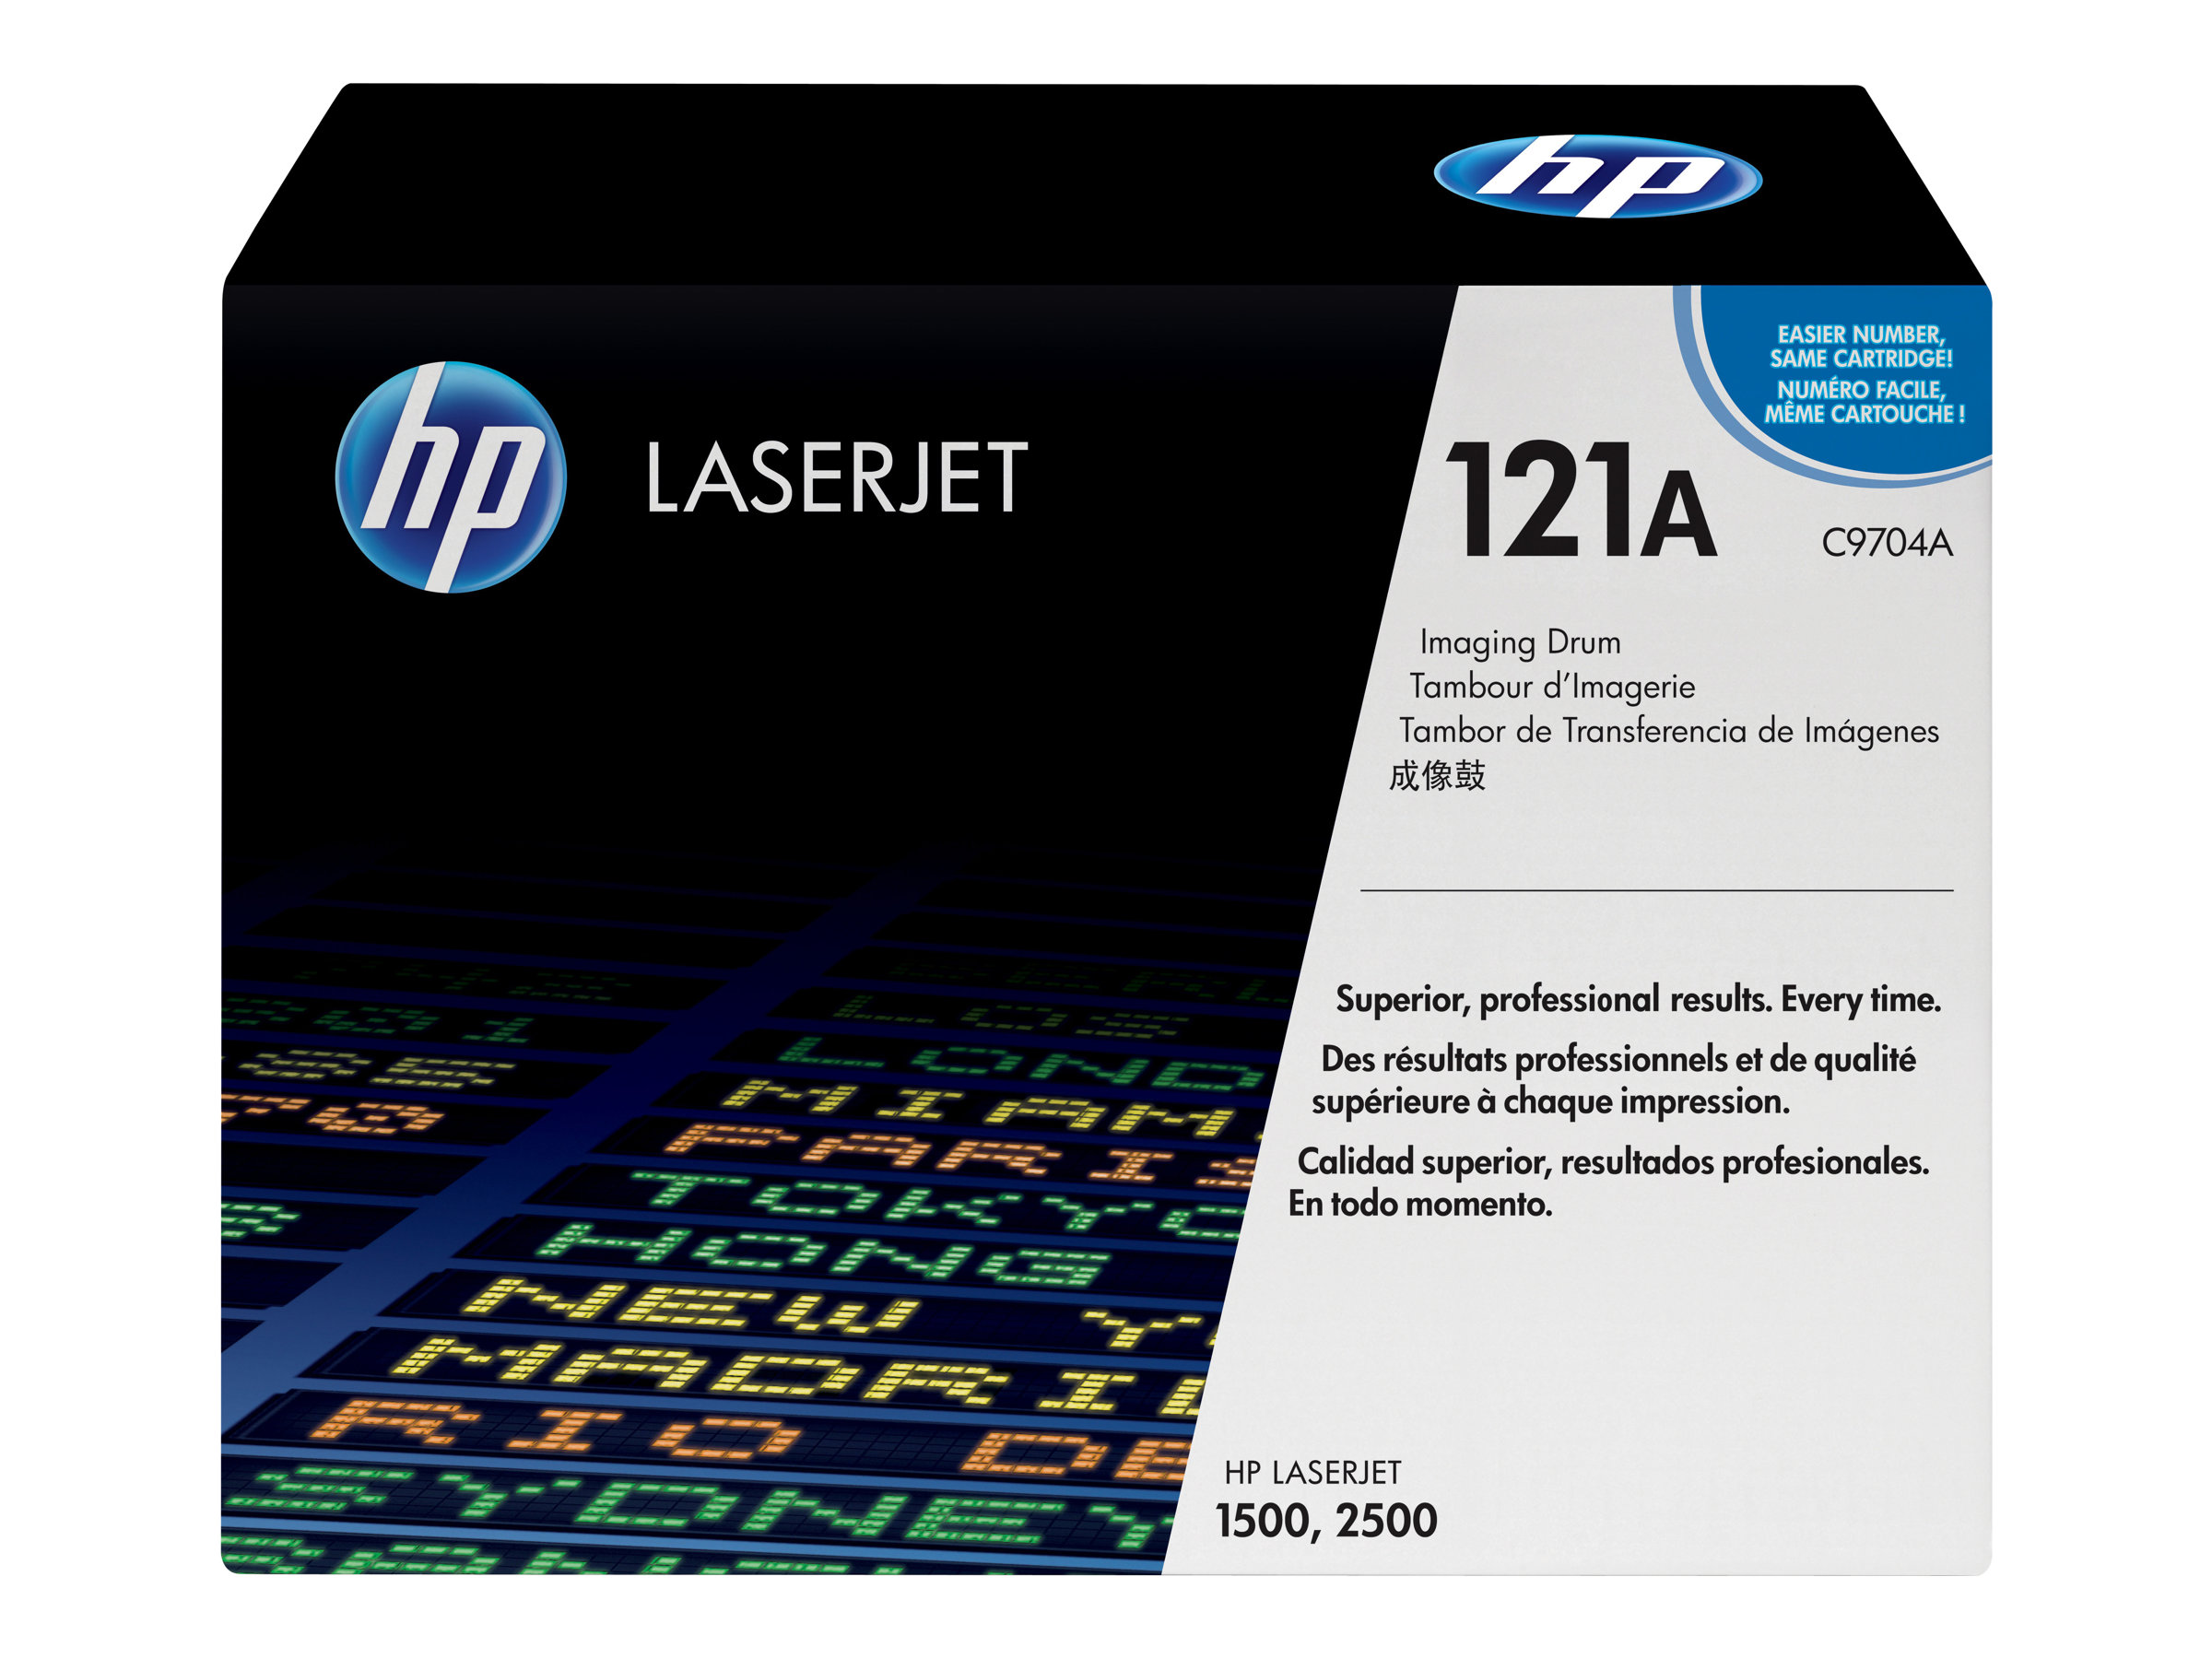 HP - 1 - Trommel-Kit - für Color LaserJet 1500, 1500L, 1500L xi, 2500, 2500L, 2500Lse, 2500n, 2500tn